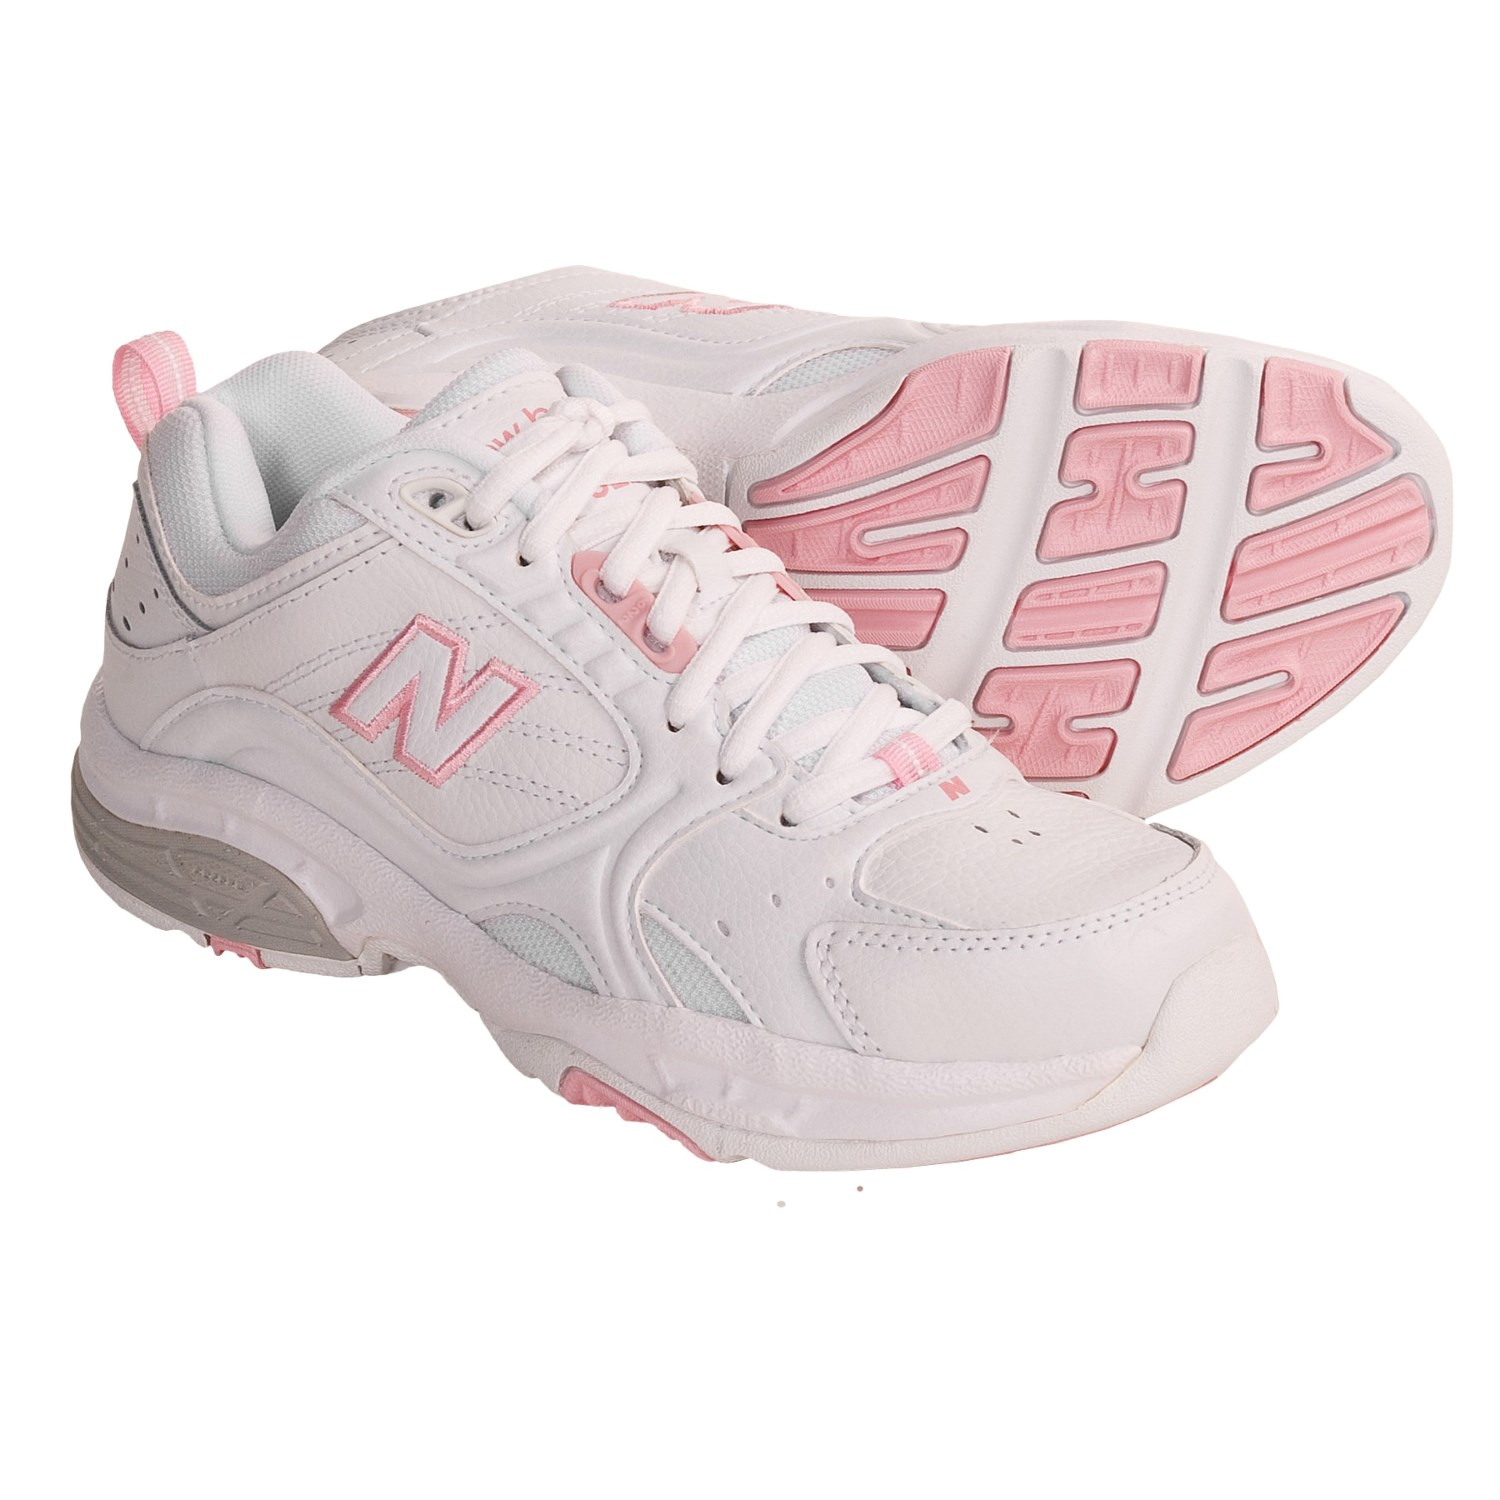 New Balance 622 Cross Training Shoes (For Women) in White/Inthepink